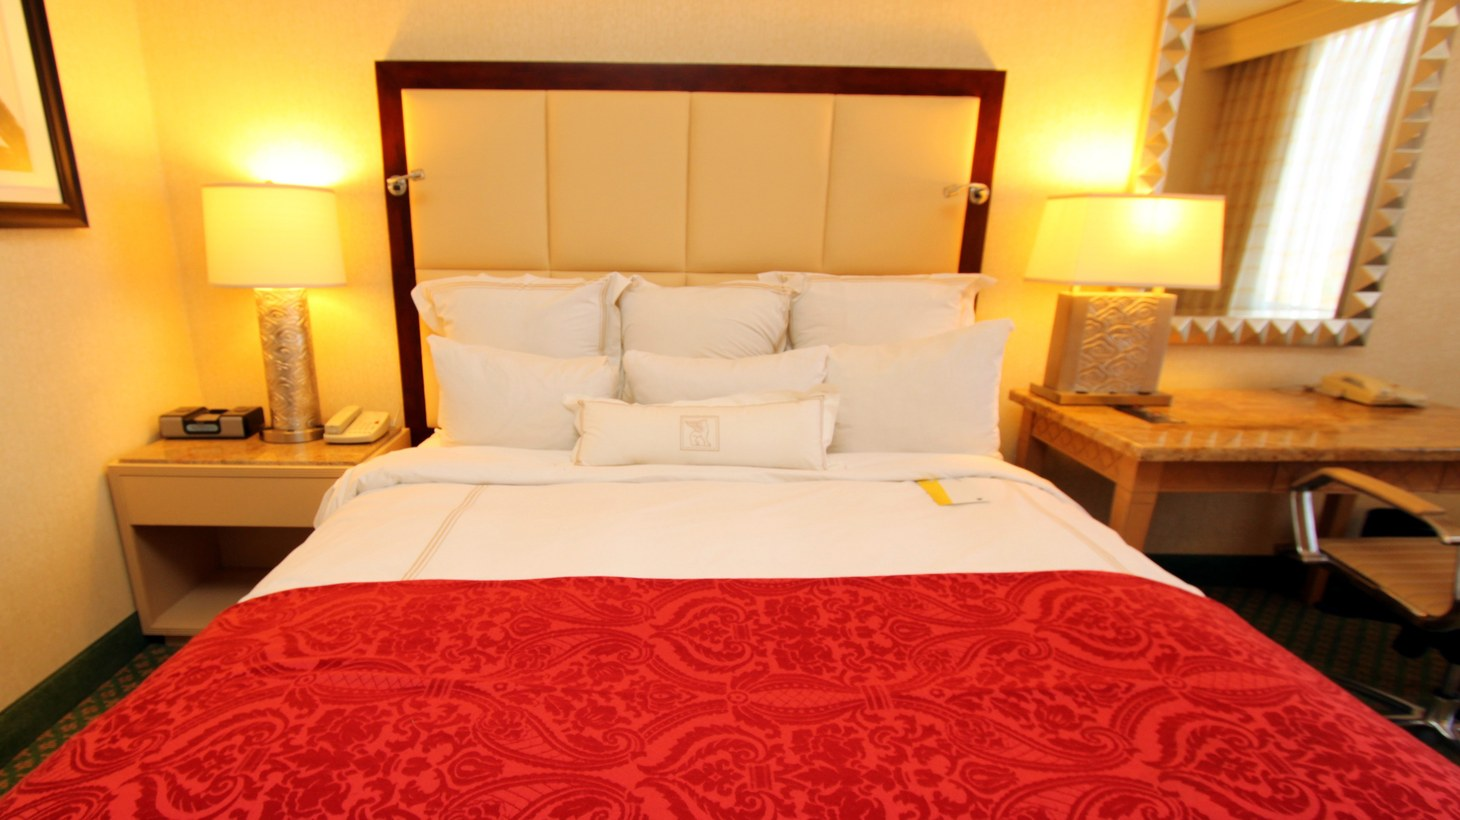 JW Marriott Hotel king bed.